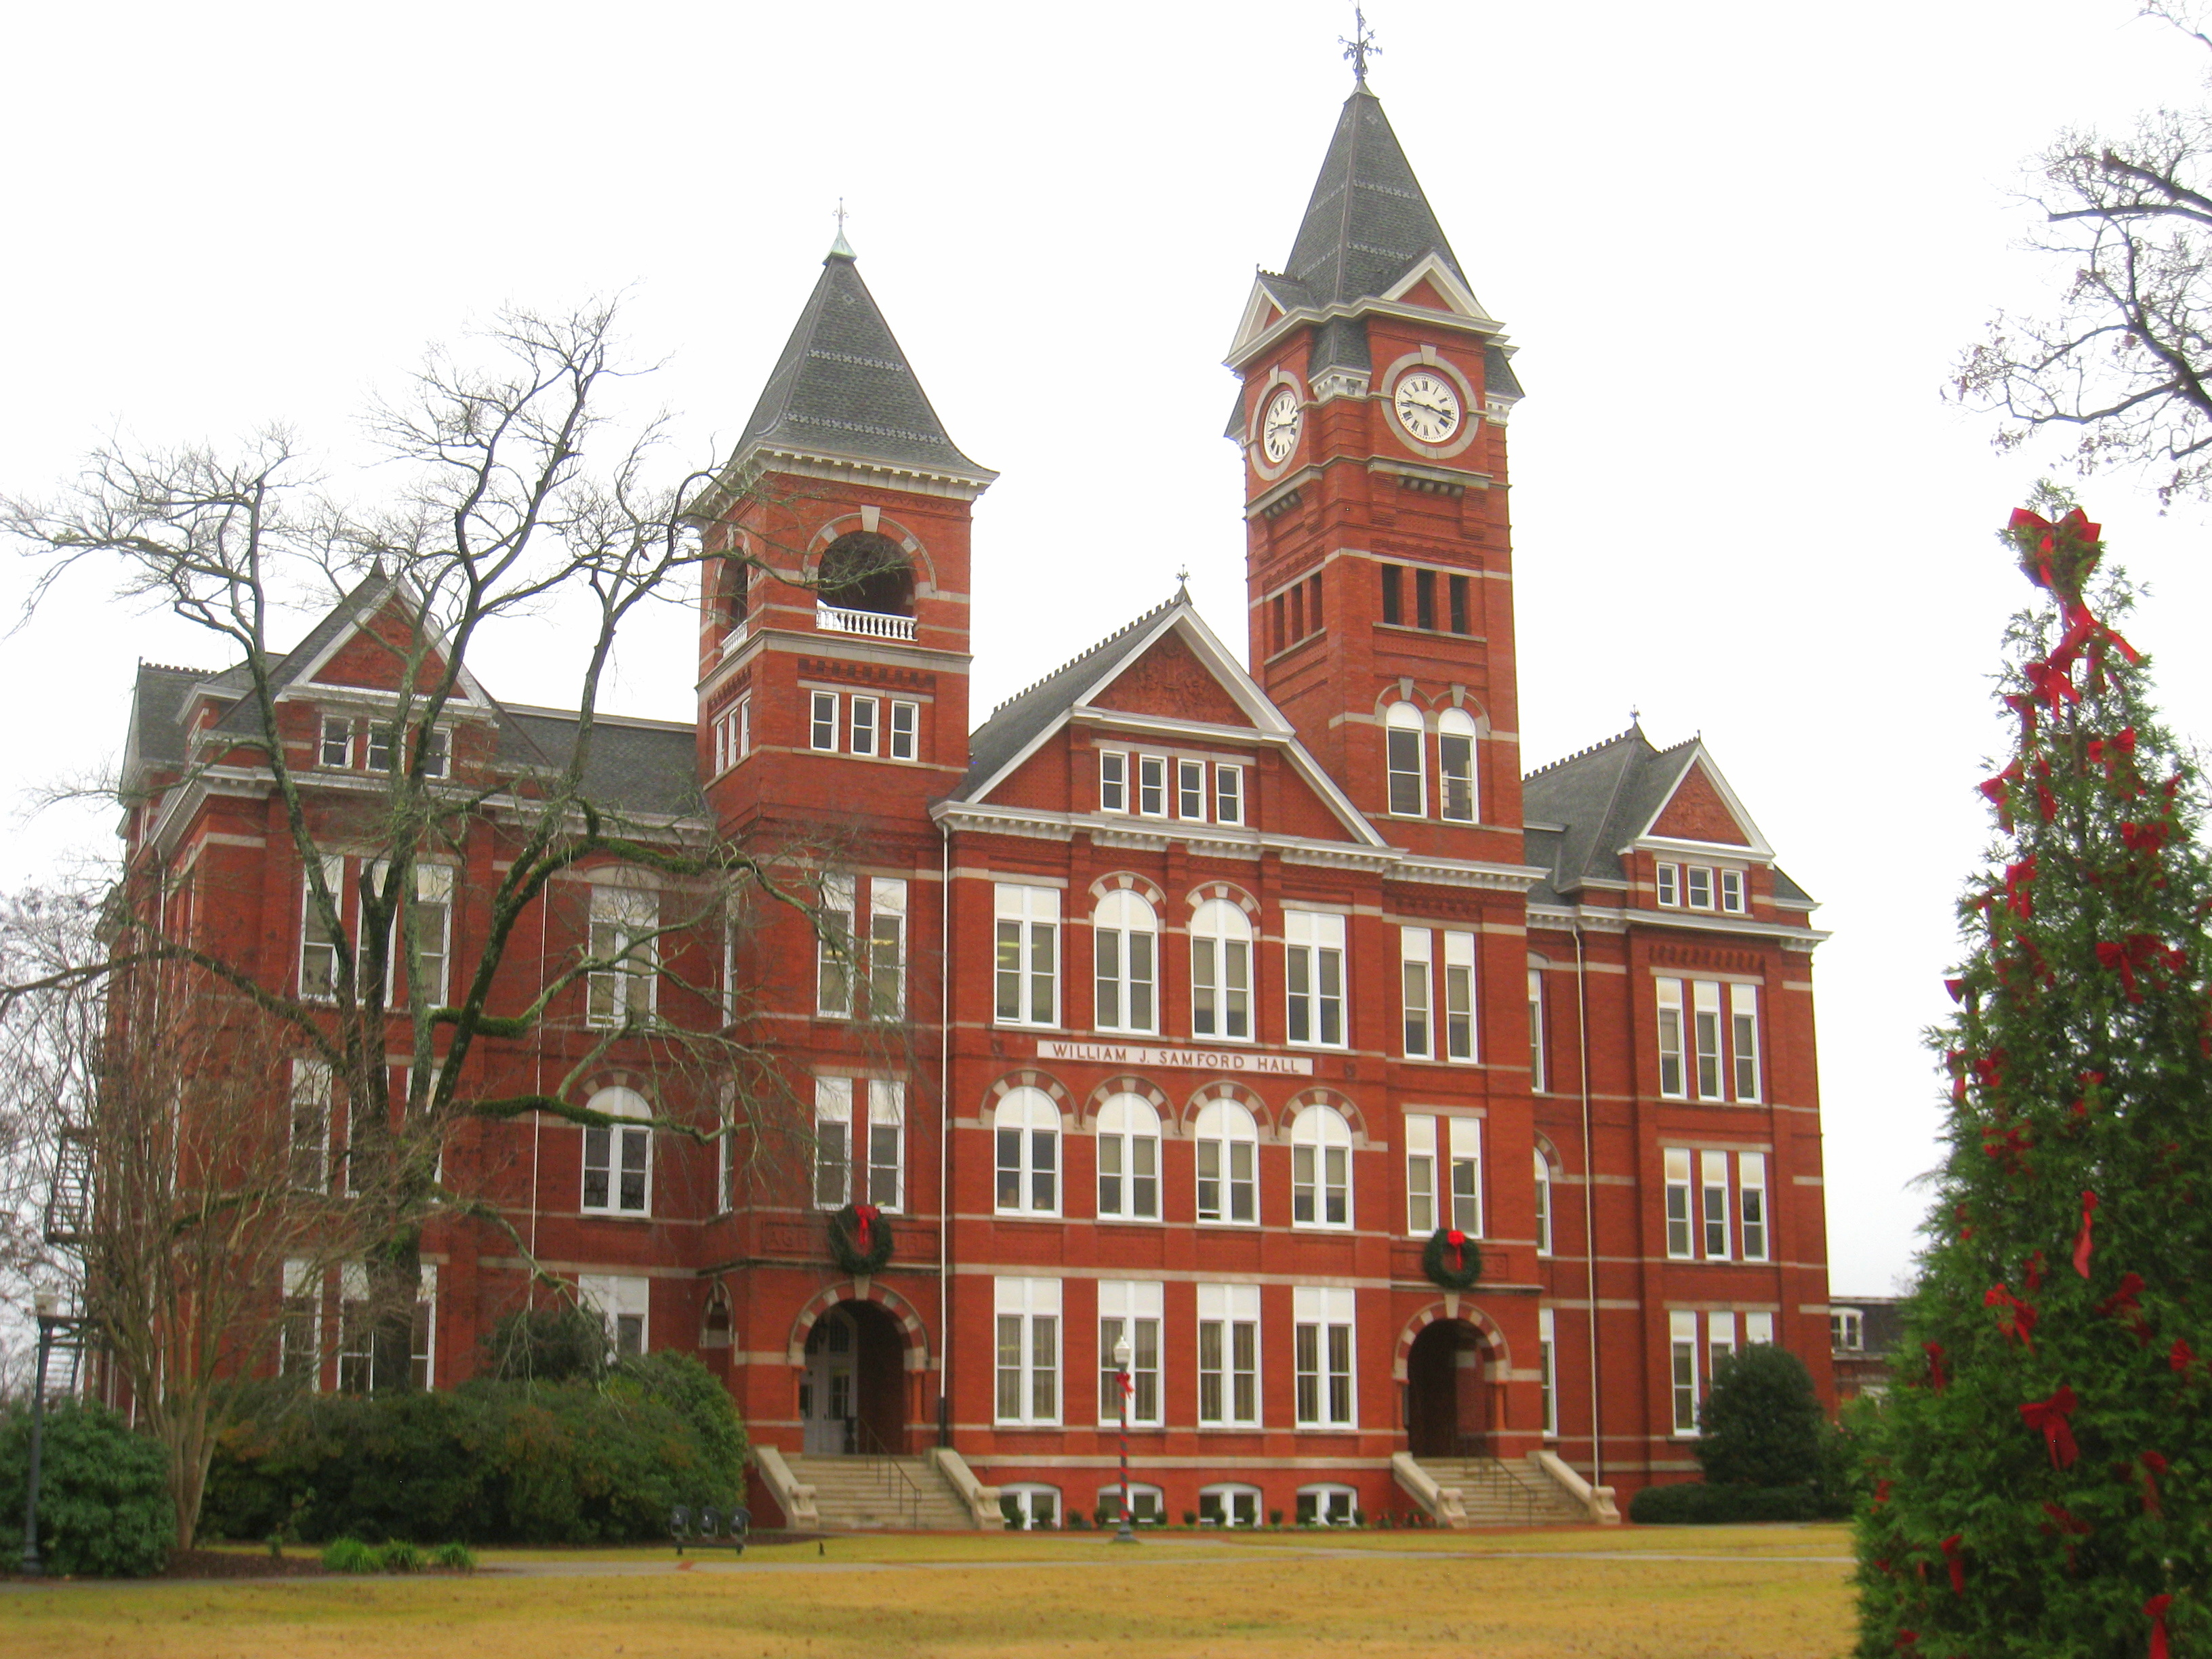 Best Colleges In Alabama >> 5 Colleges with the Highest STD Rates